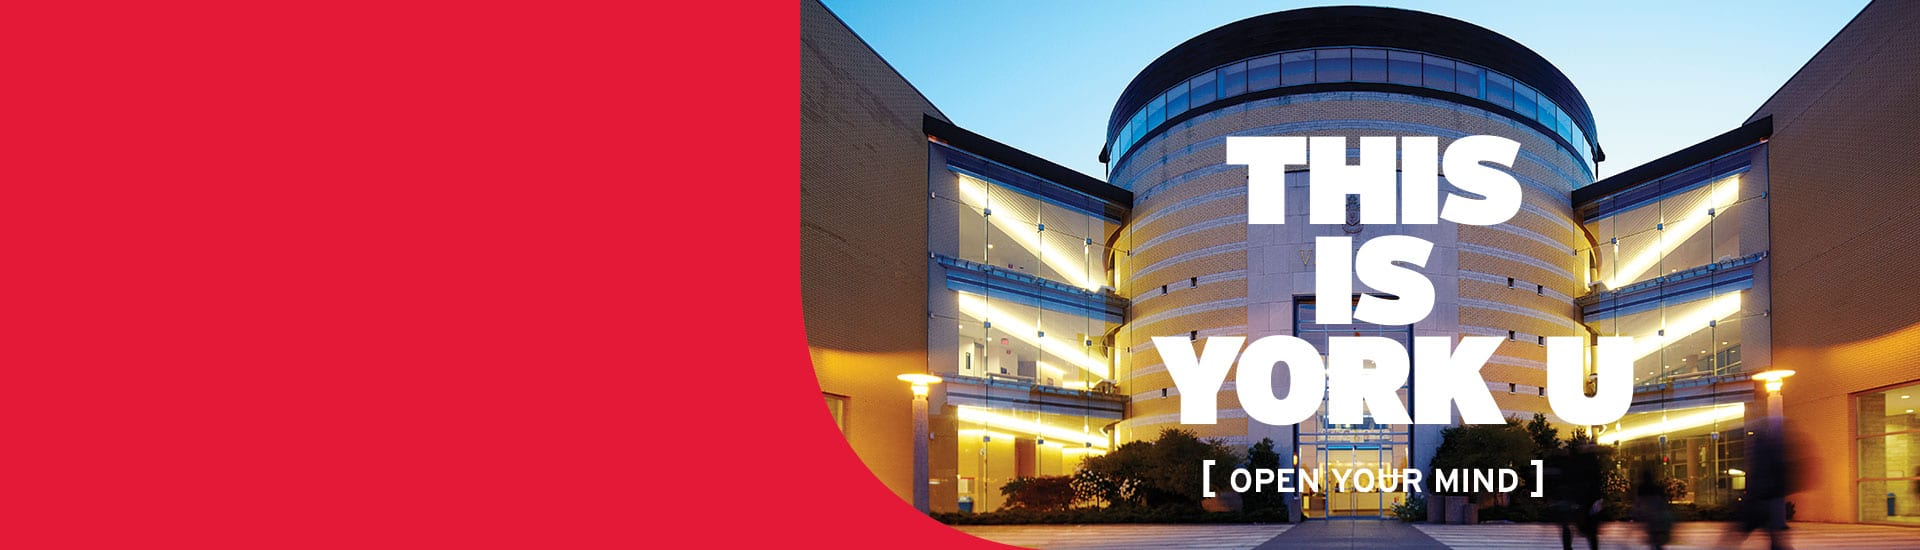 York University is known for championing new ways of thinking that drive teaching and research excellence.